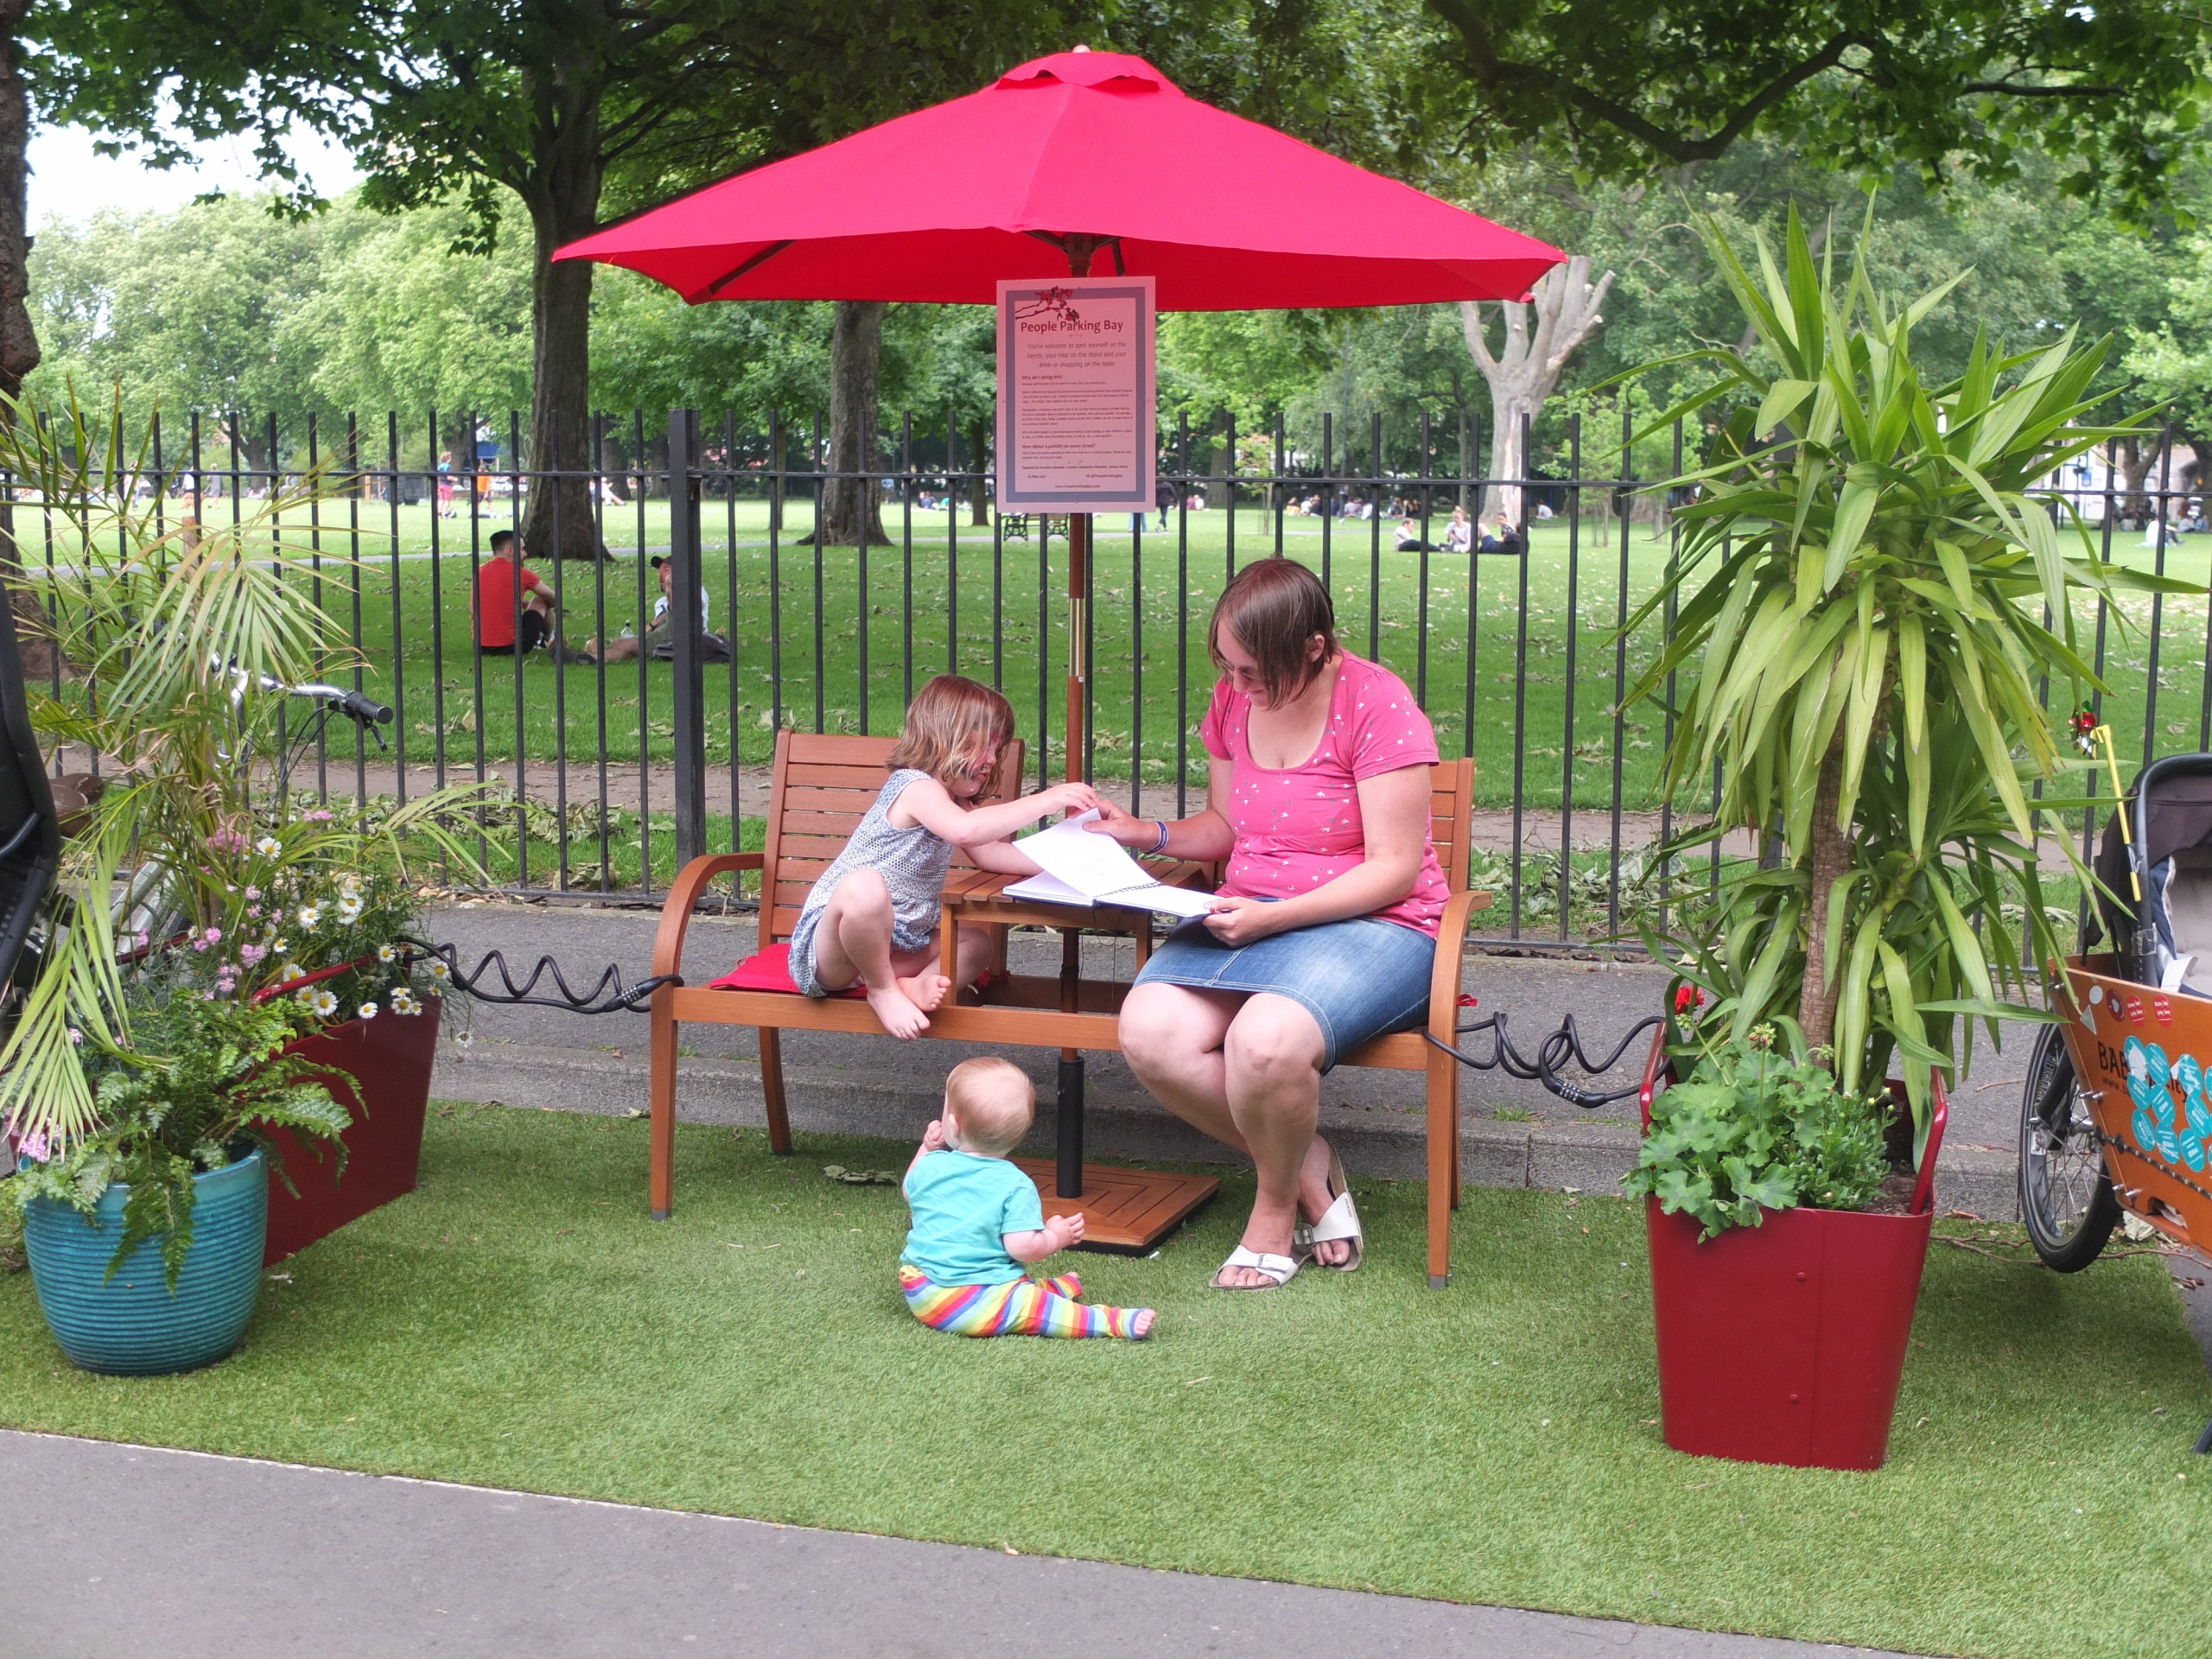 Party in the park: campaign urges people to reimagine parking spaces